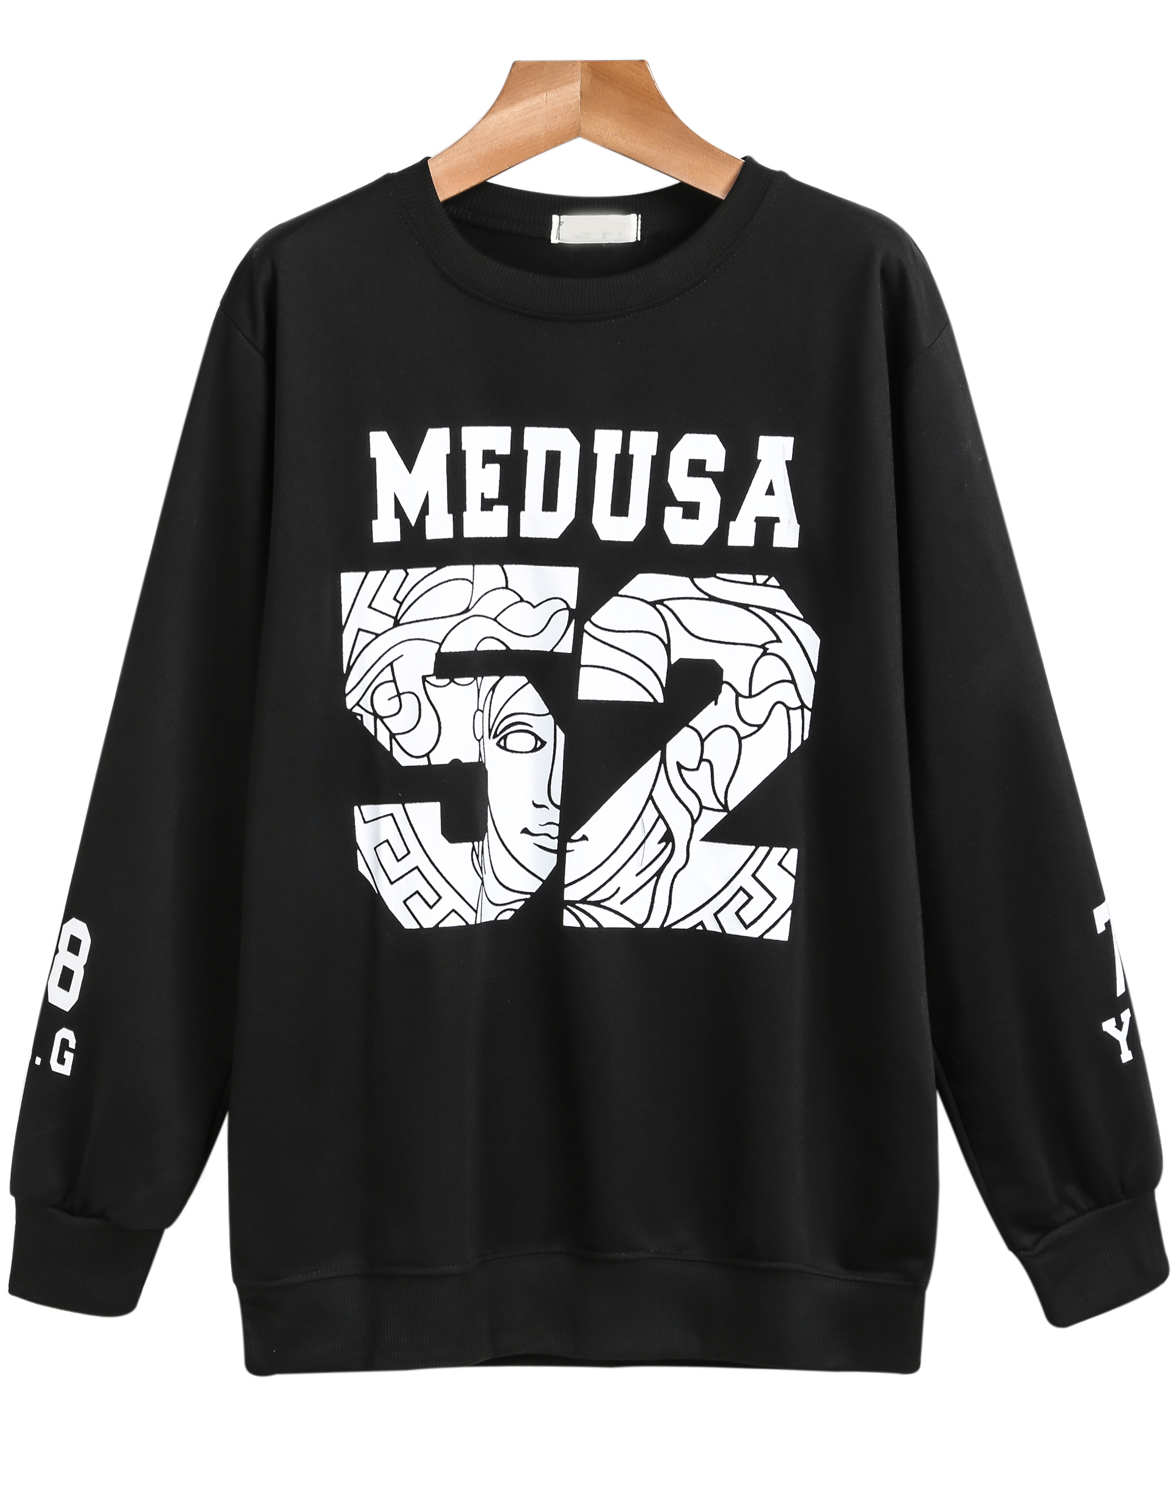 Black Long Sleeve MEDUSA 52 Print Sweatshirt - Sheinside.com